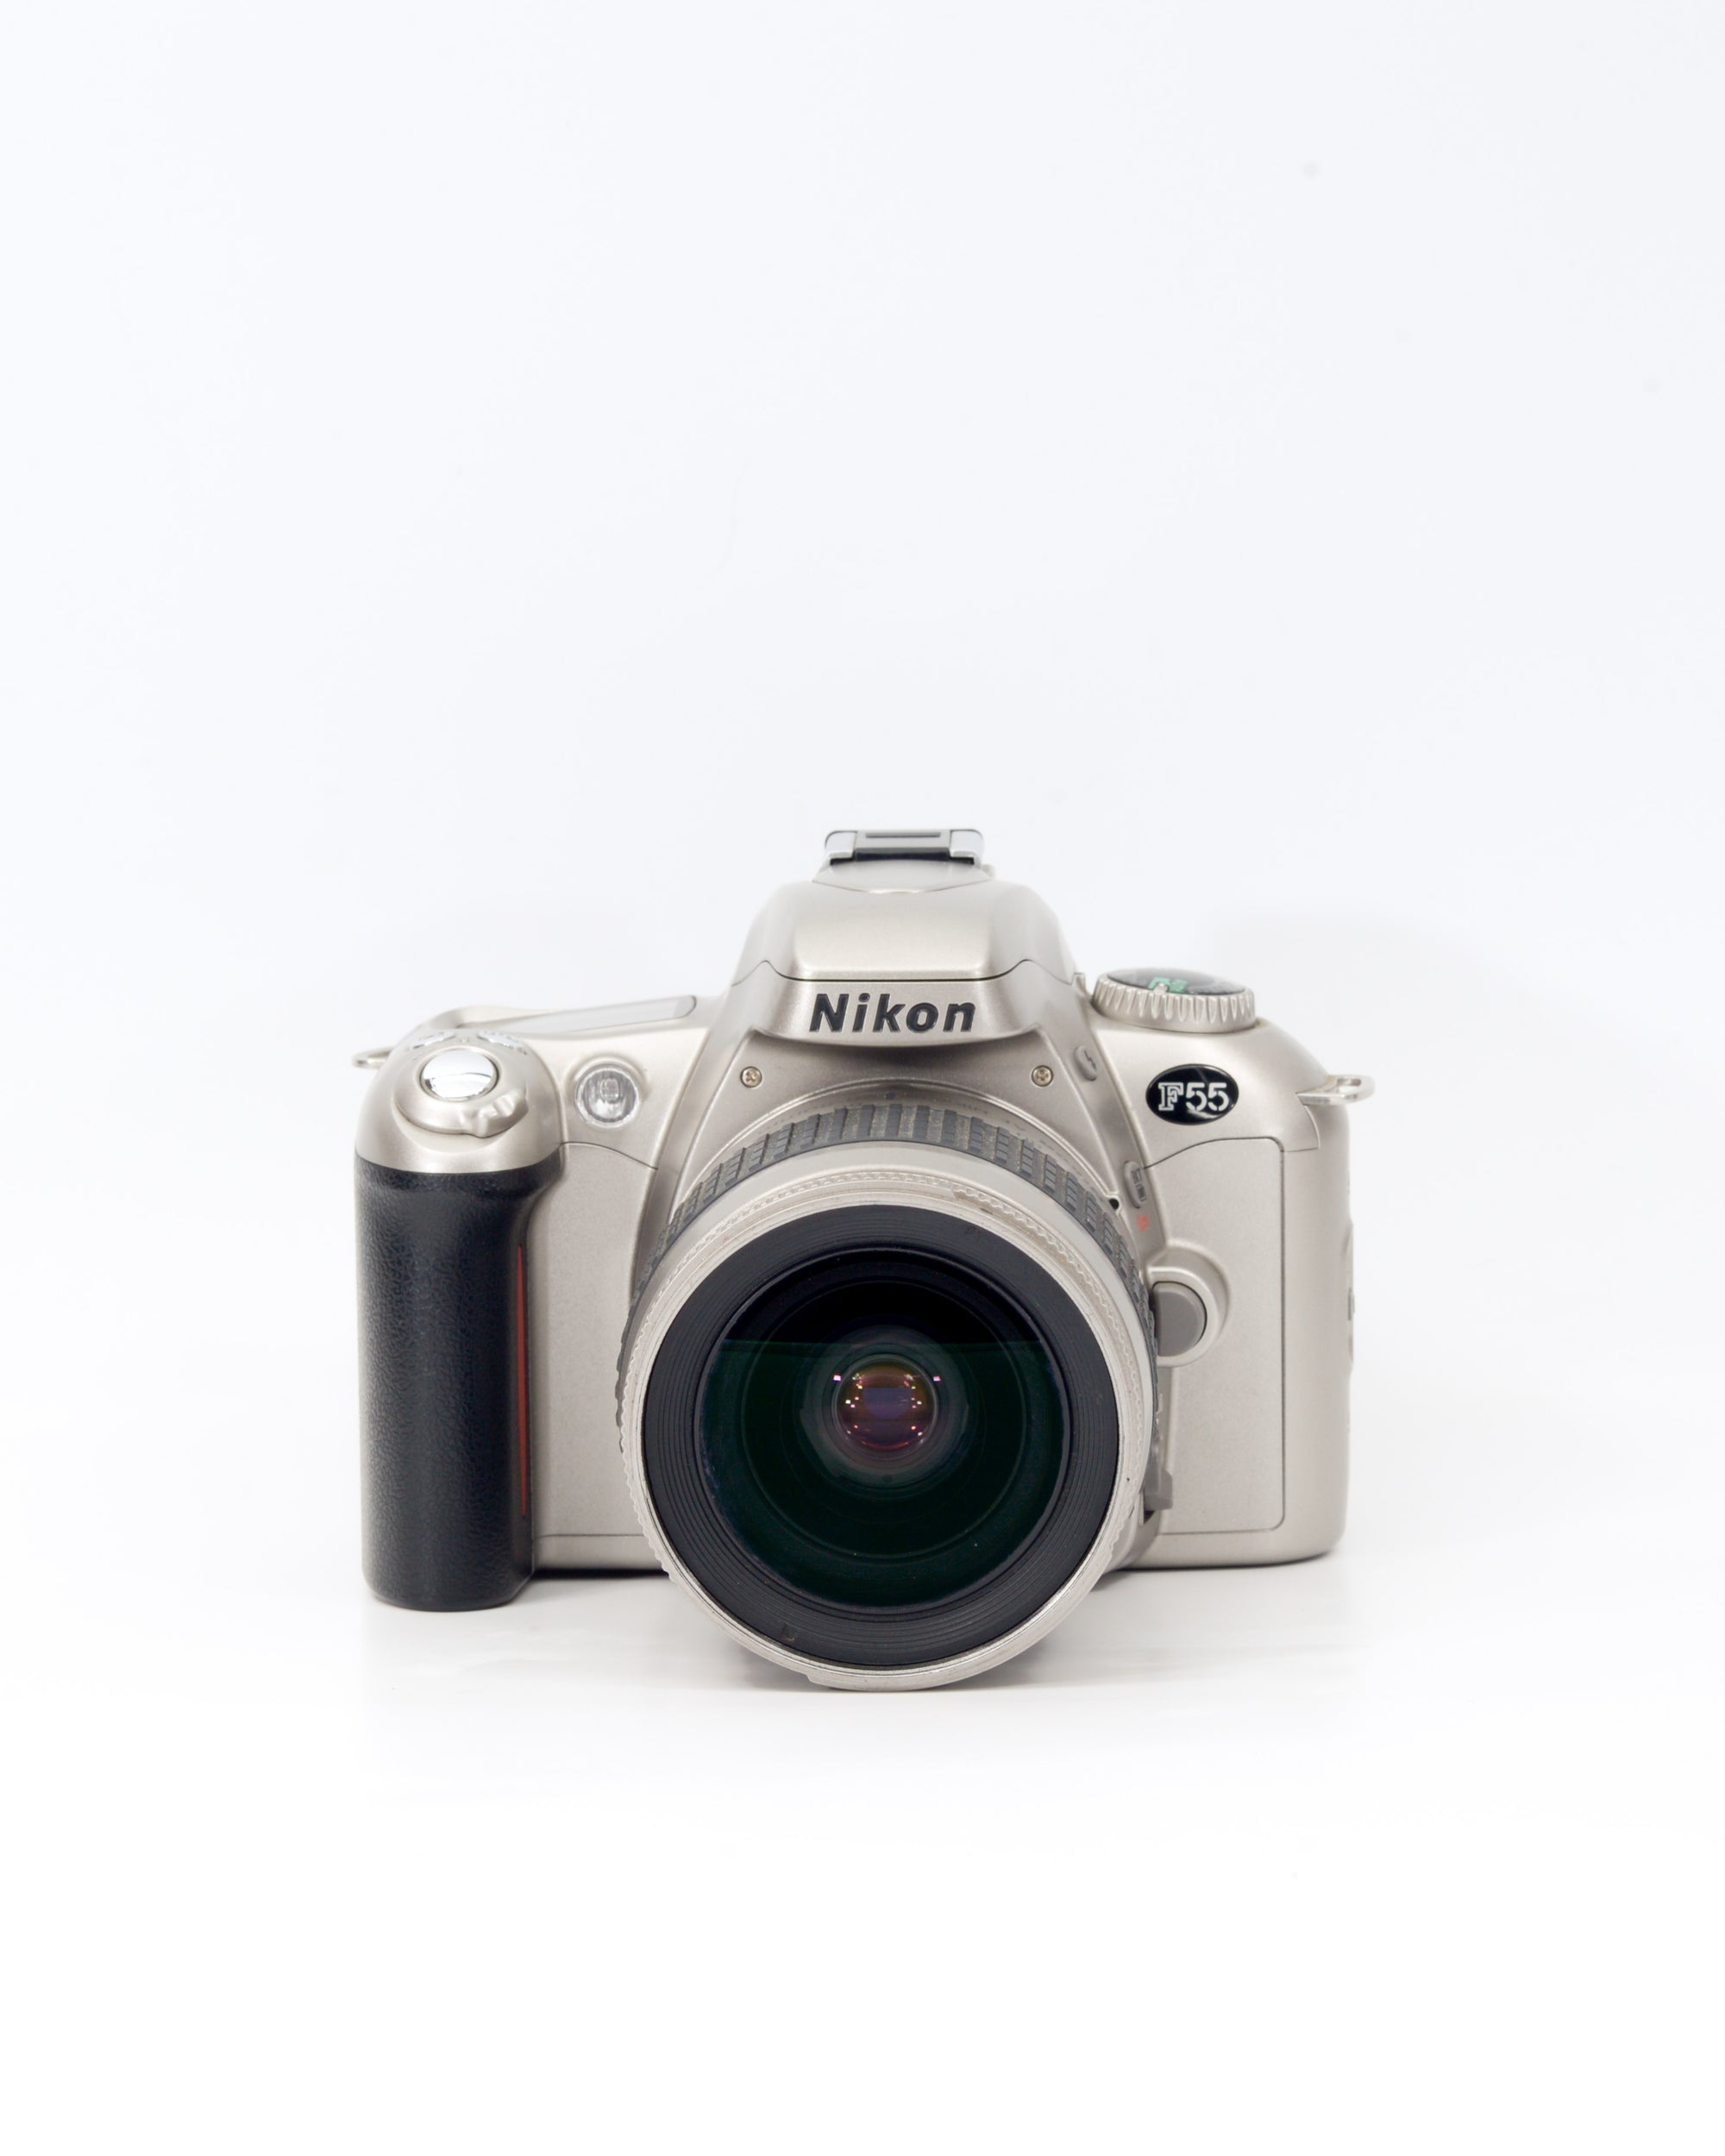 Nikon F55 35mm SLR film camera with 28-80mm lens